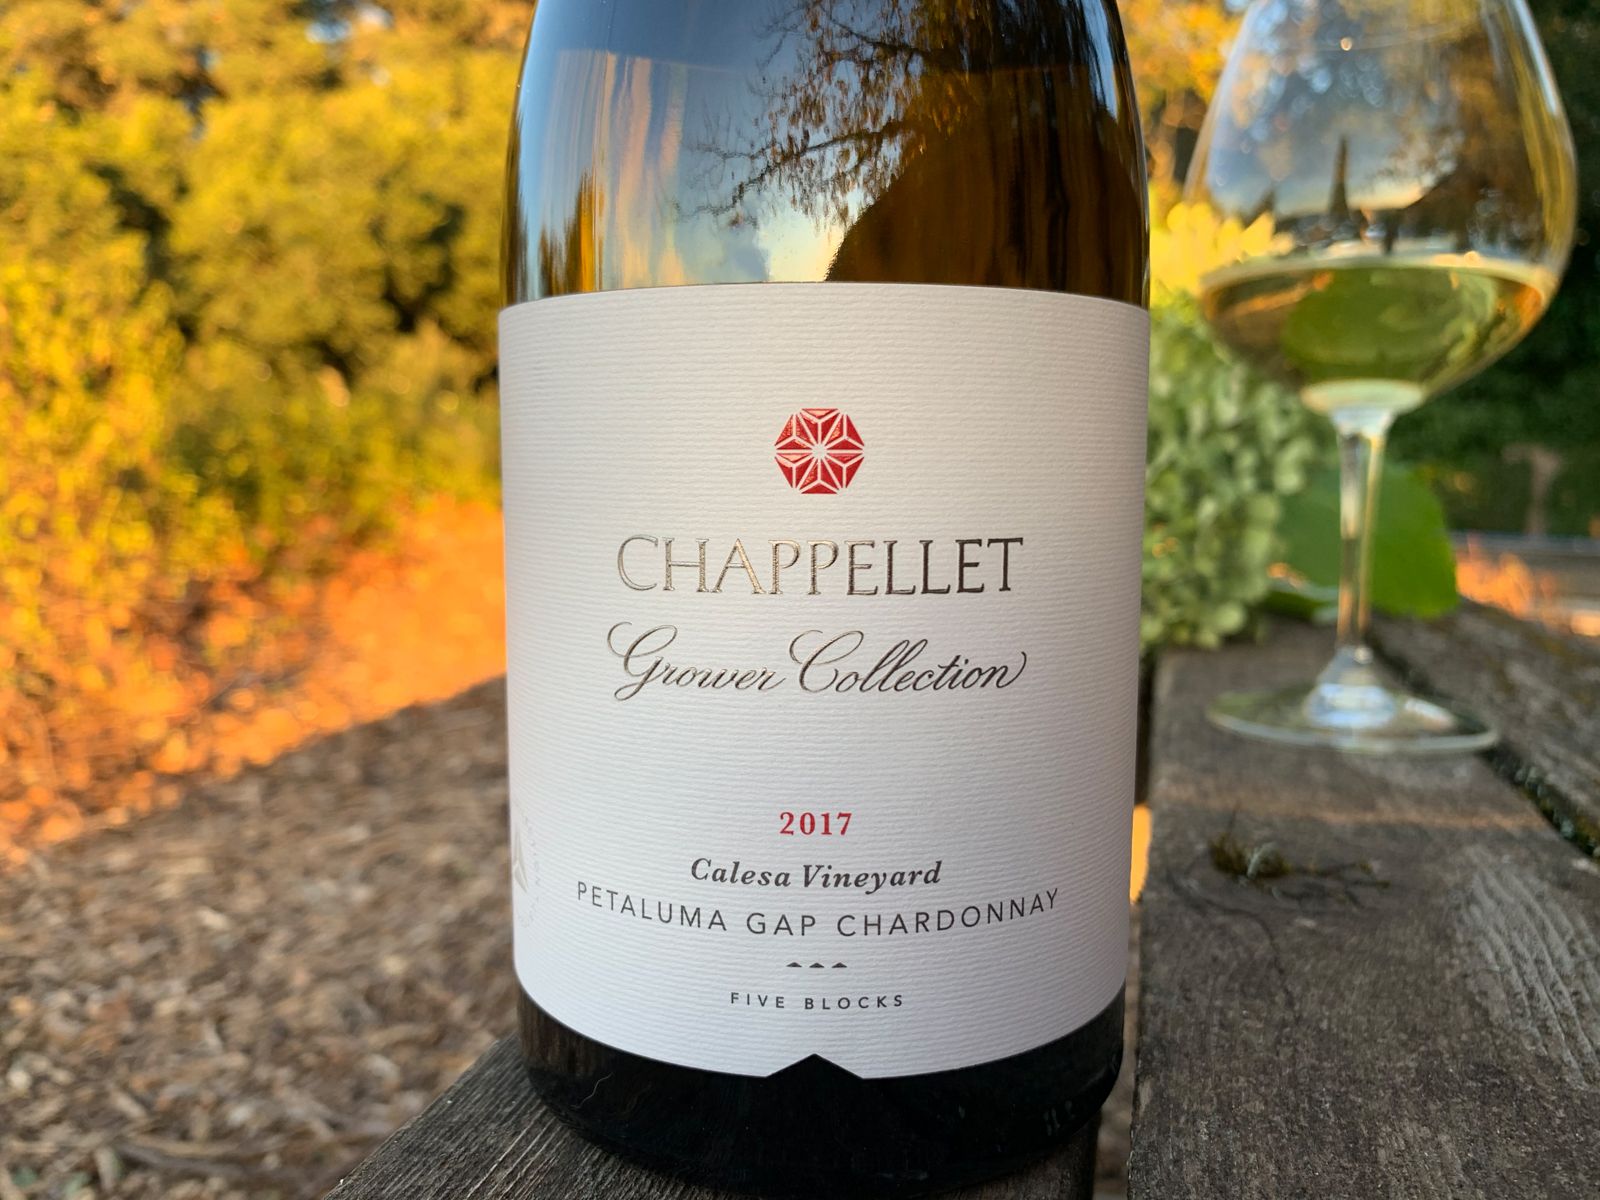 2017 Chappellet Grower Collection Calesa Vineyard Petaluma Gap Chardonnay